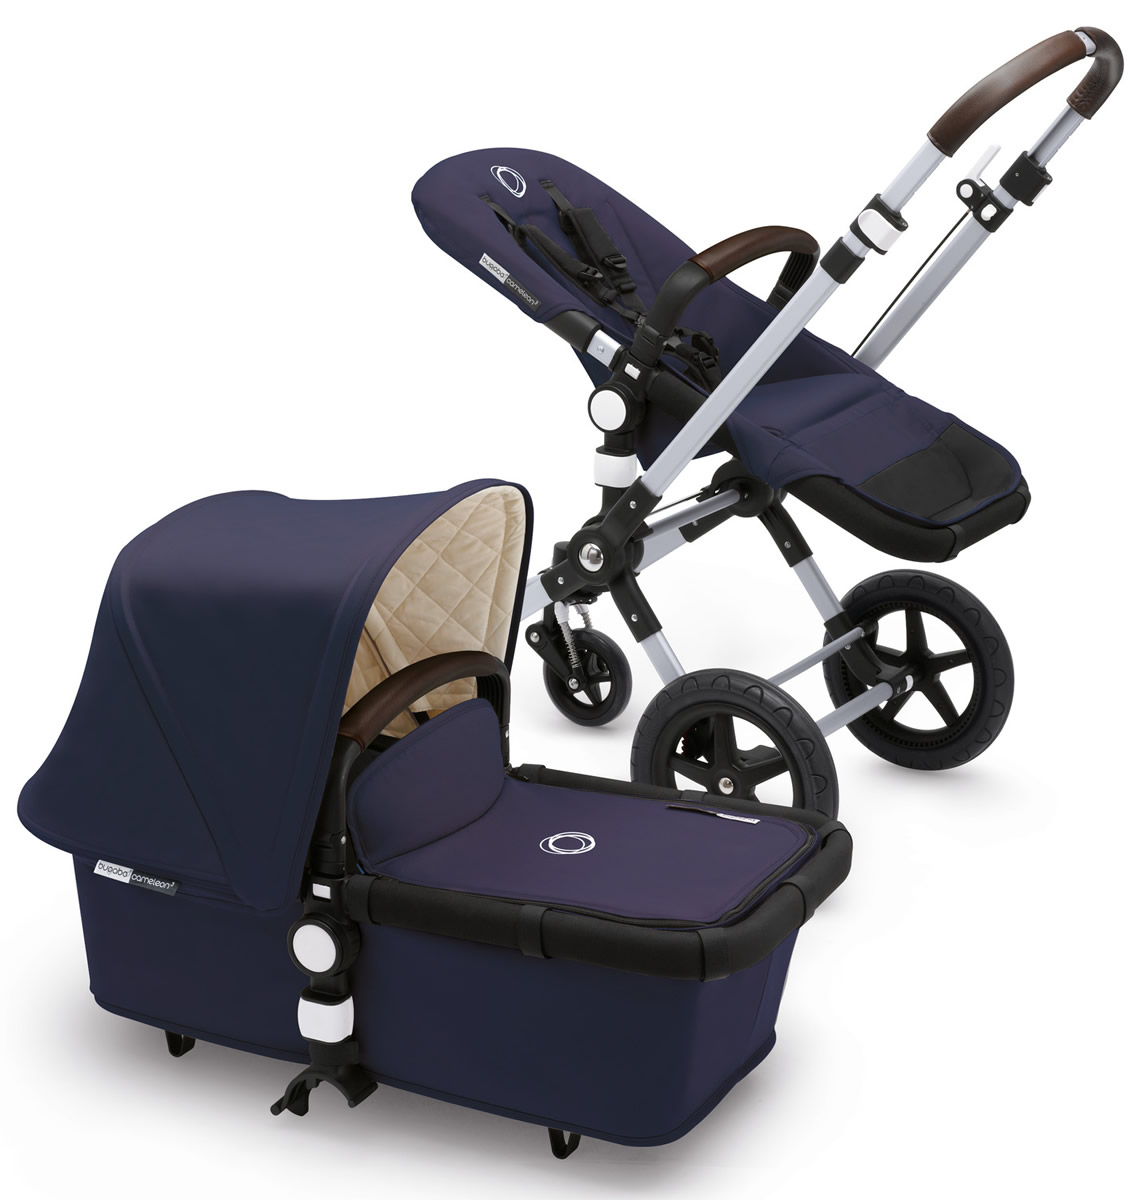 Bugaboo Cameleon 3 Classic Plus Stroller, Navy Blue